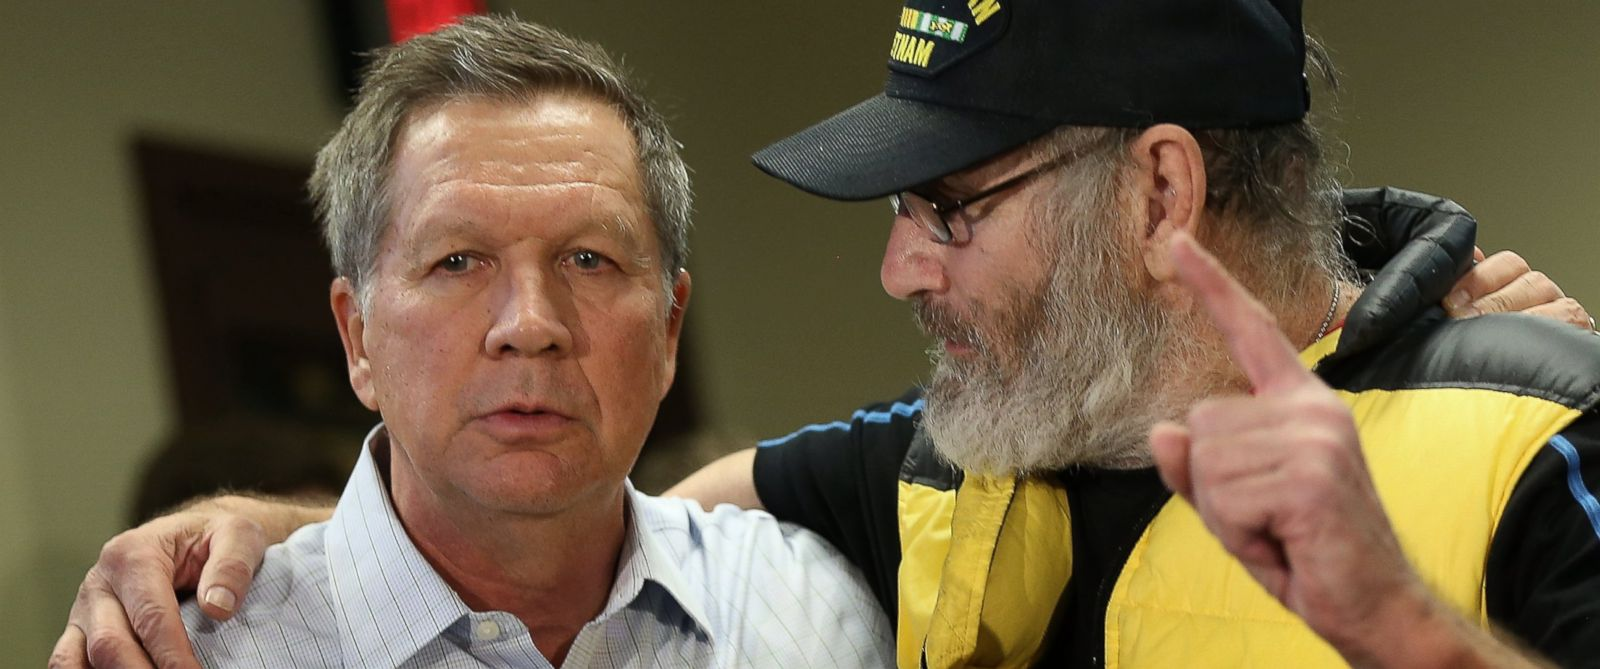 PHOTO: Vietnam veteran David AuCoin puts his arm around Republican presidential candidate John Kasich as he asks the candidate a question during a town hall event at the Plaistow Town Hall, Feb. 8, 2016 in New Hampshire.